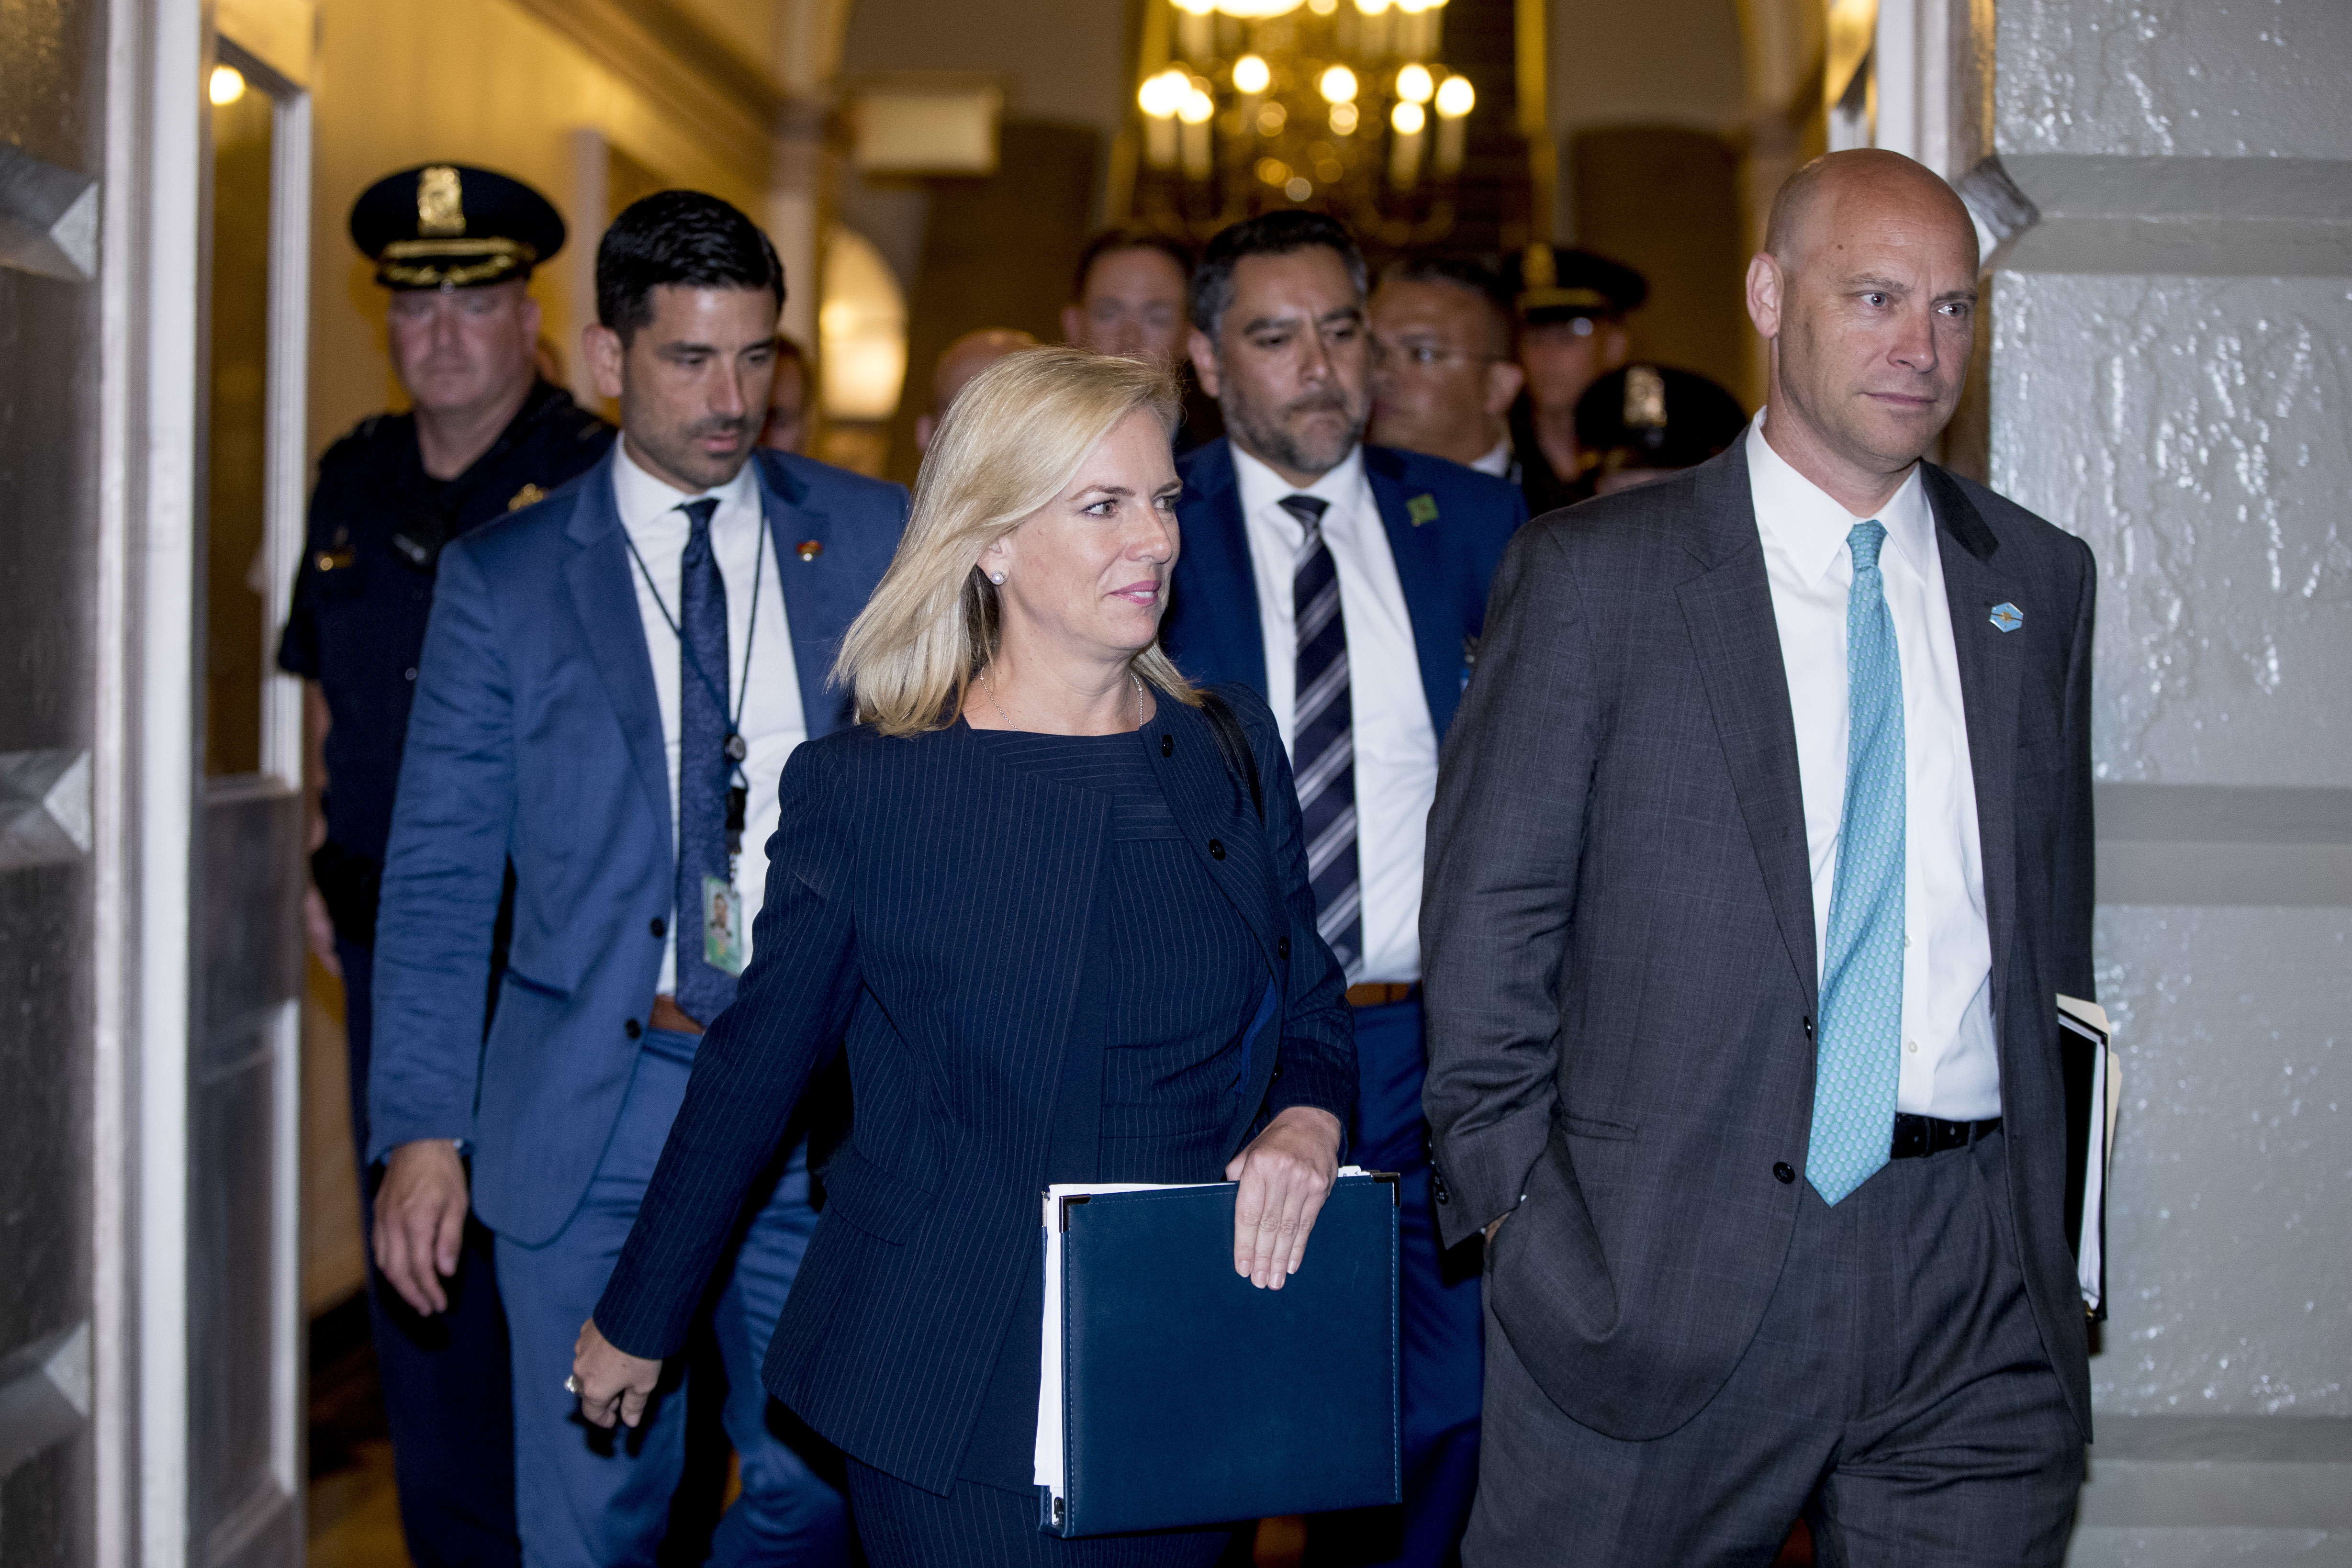 Homeland Security Secretary Kirstjen Nielsen, left, and White House Director of Legislative Affairs Marc Short, right, arrive for a meeting with President Donald Trump on Capitol Hill in Washington, Tuesday, June 19, 2018, as Trump rallies Republicans around a GOP immigration bill.  (AP Photo/J. Scott Applewhite)